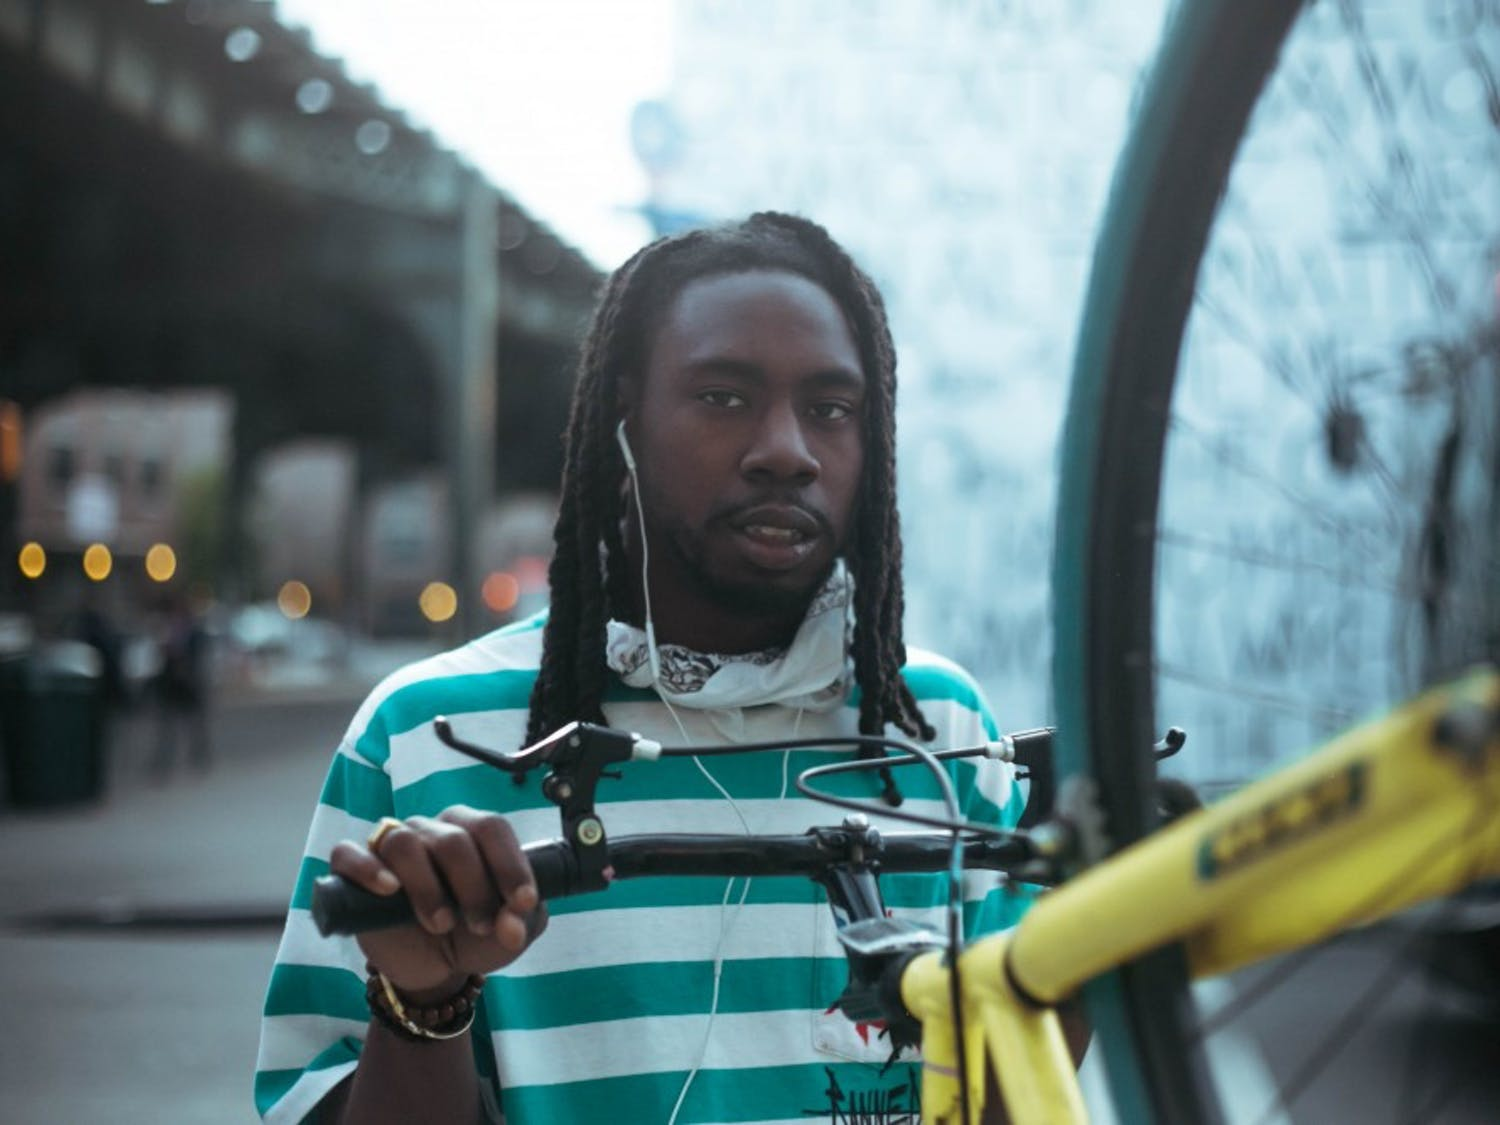 Buffalo rapper Billie Essco poses with a bicycle.